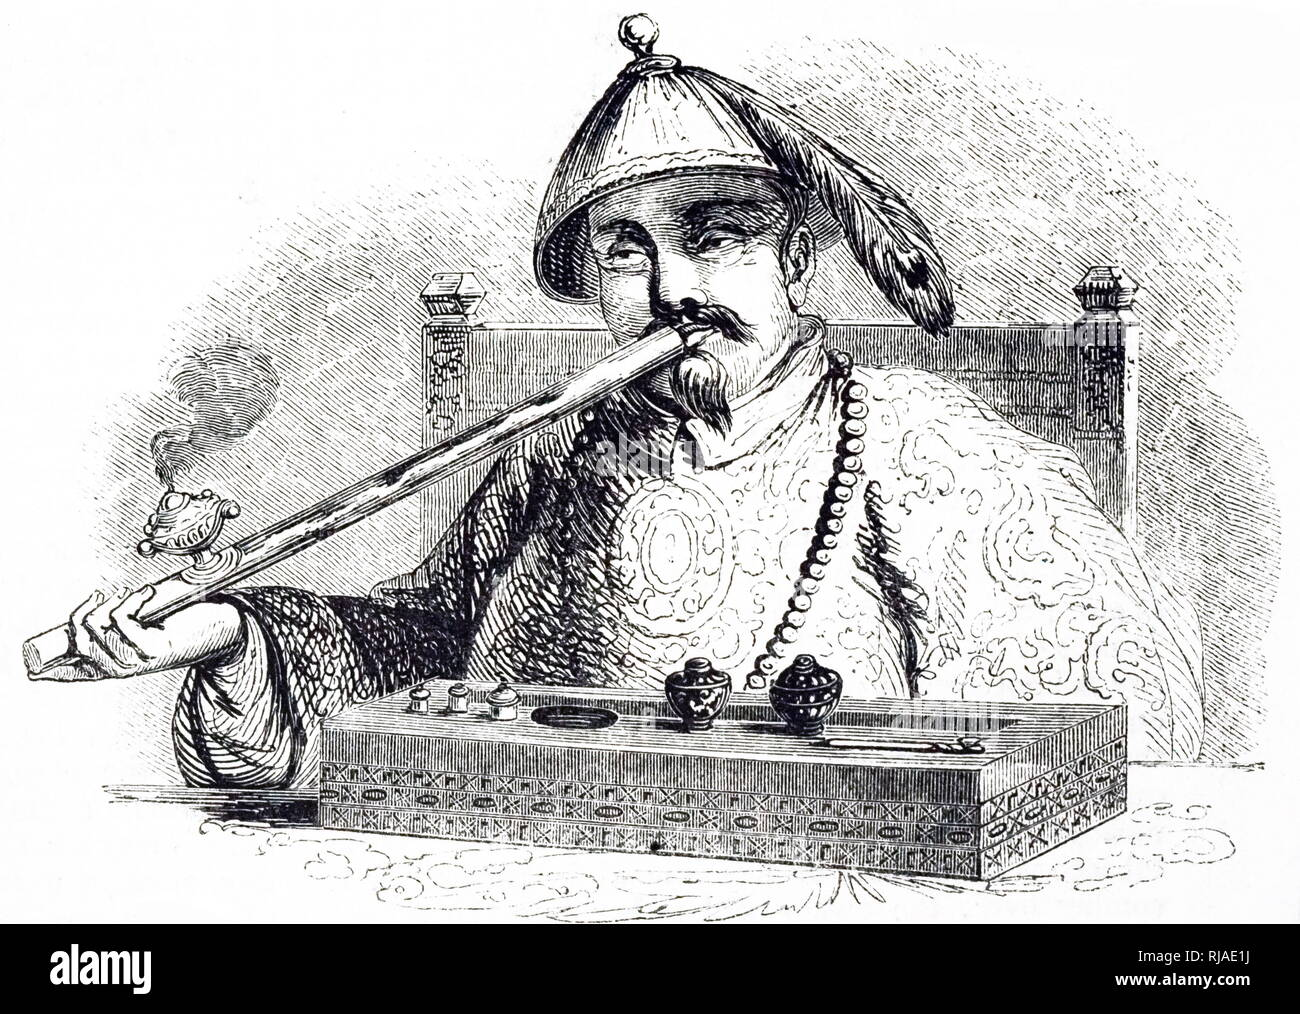 Illustration depicting a Chinese man smoking opium 1852. Imports of opium into China stood at 200 chests annually in 1729, when the first anti-opium edict was promulgated. By the time Chinese authorities reissued the prohibition in starker terms in 1799, the figure had leaped; 4,500 chests were imported in the year 1800. The decade of the 1830s witnessed a rapid rise in the opium trade, and by 1838, just before the First Opium War, it had climbed to 40,000 chests. The rise continued on after the Treaty of Nanking (1842) that concluded the war - Stock Image